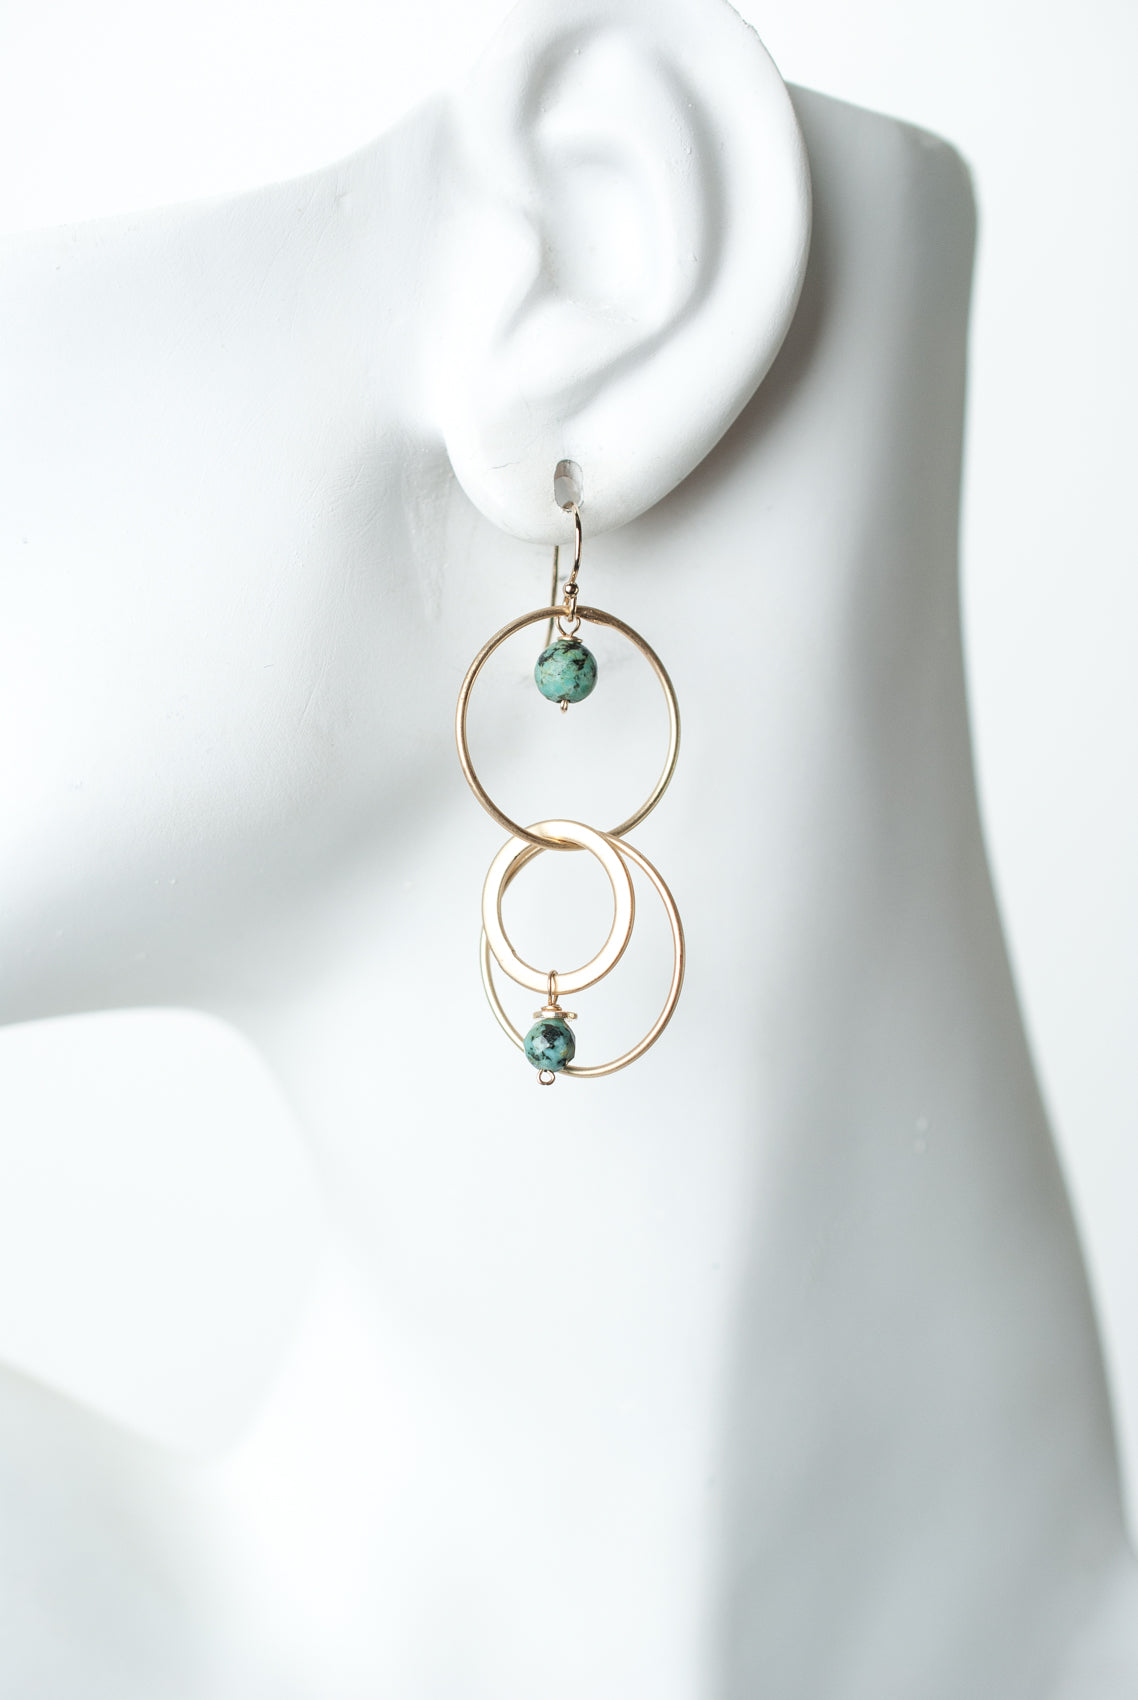 Tranquil Gardens African Turquoise Hoop Dangle Earrings